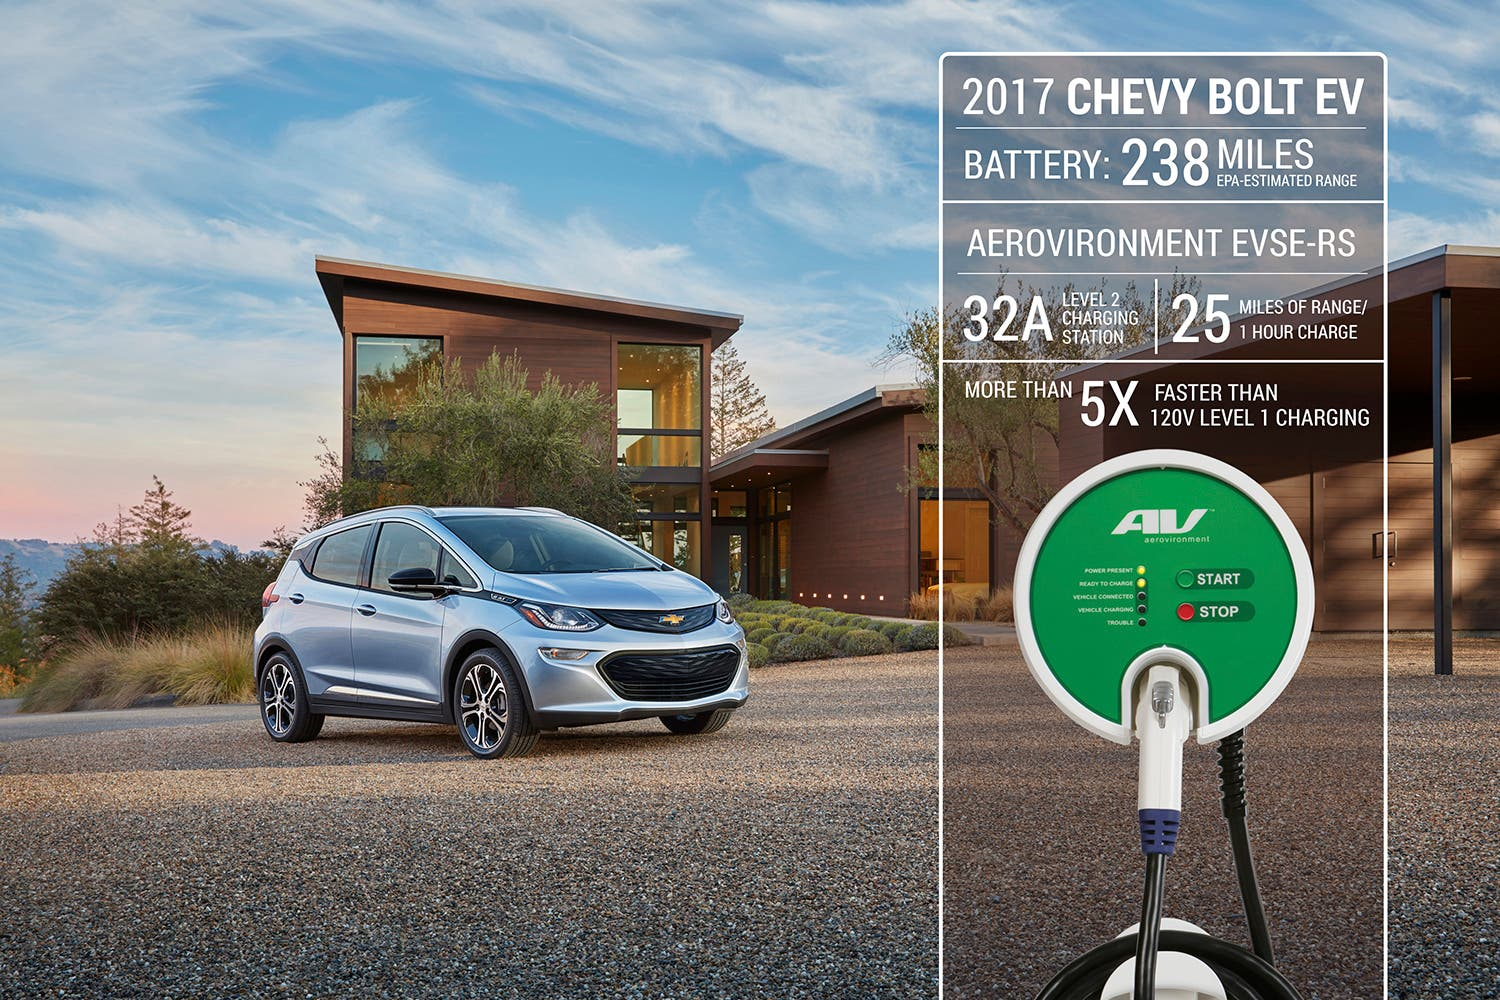 Gm Selects Aerovironment Evse Rs For Official 2017 Chevy